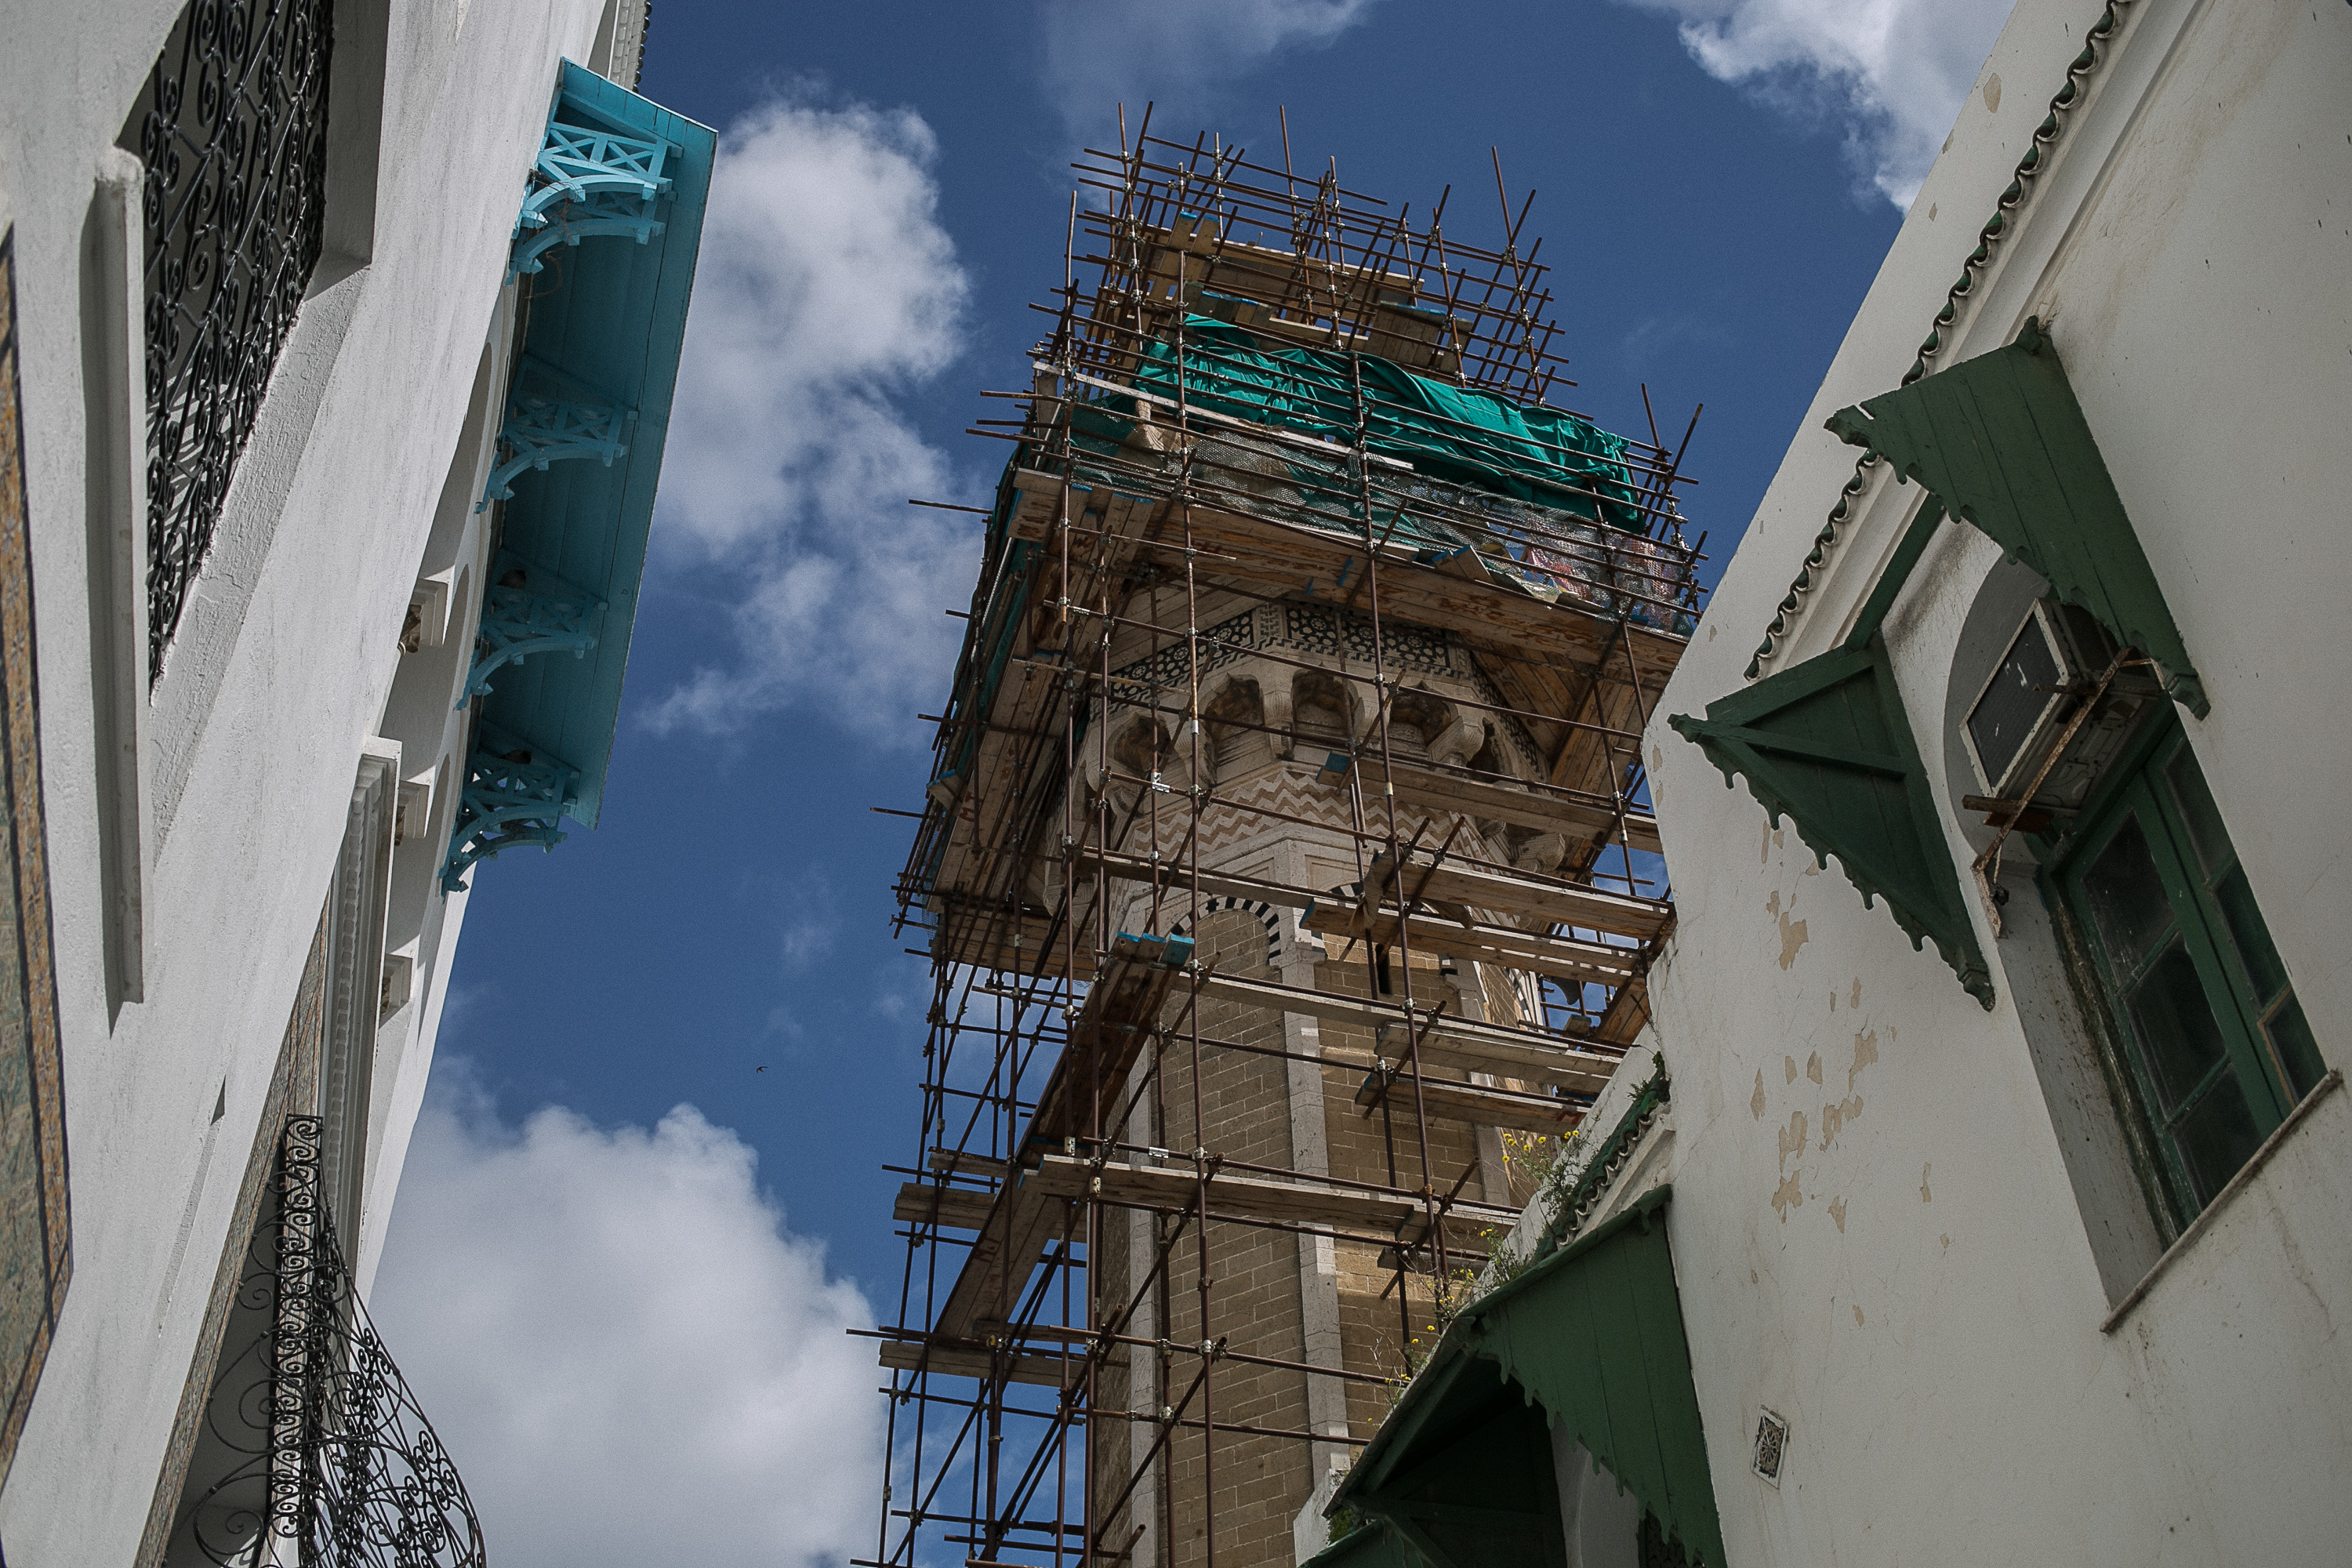 Minaret of the Hammouda Pacha Mosque under renovation.jpg Minaret of the Hammouda Pacha Mosque under renovation Date 27 March 2015, 08:42 Source Fórum